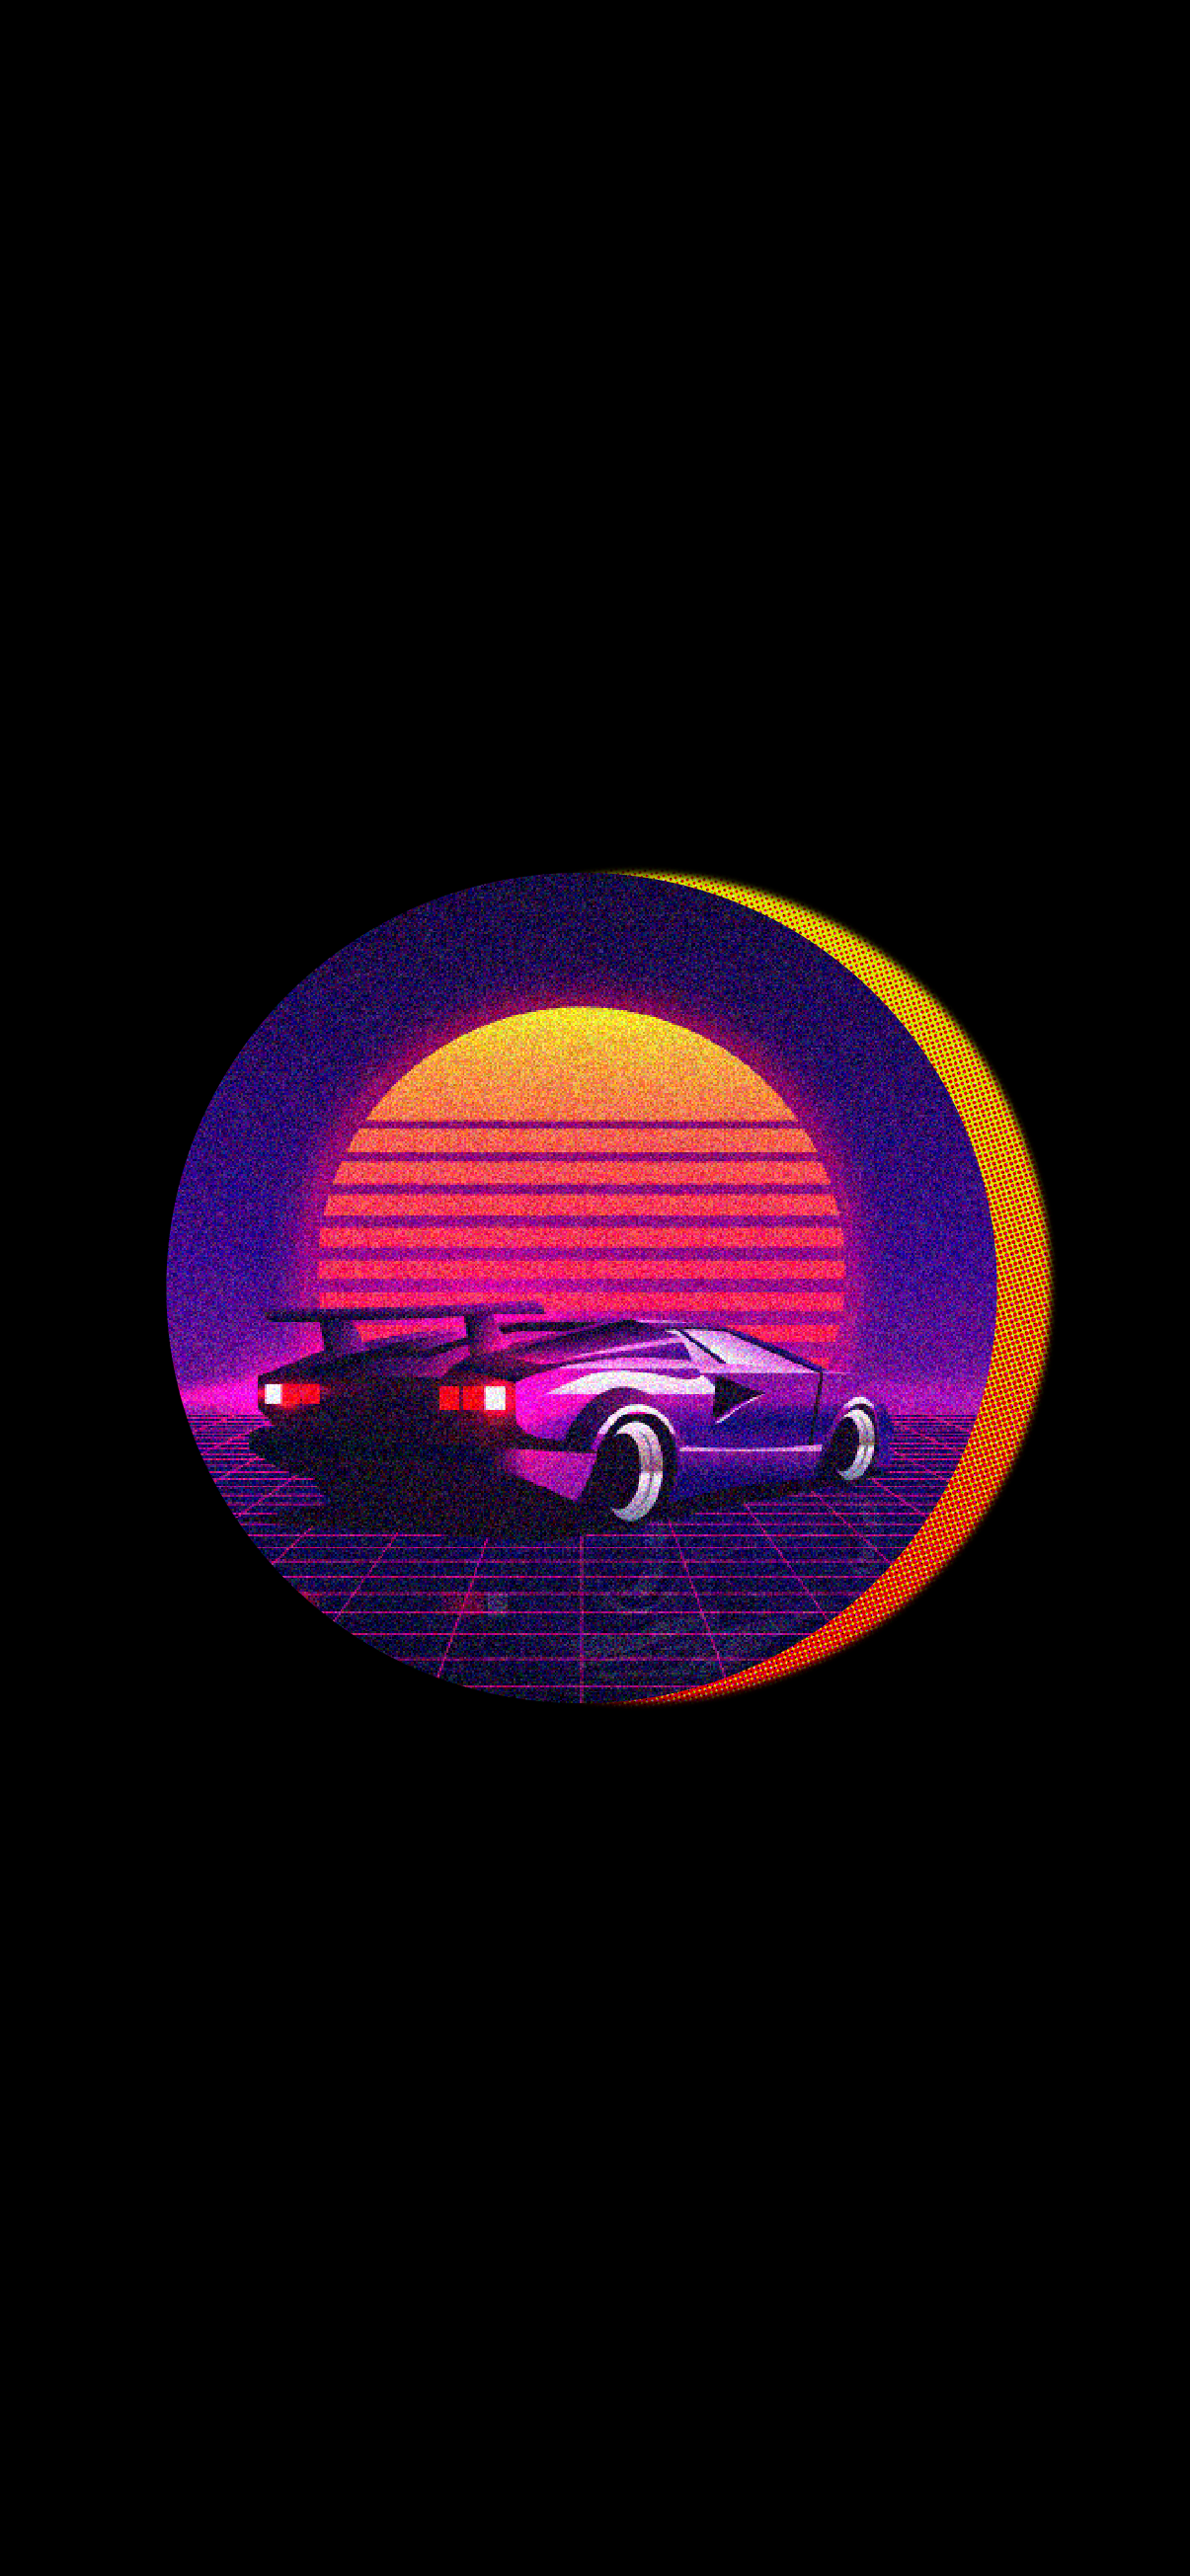 synthwave car retro style